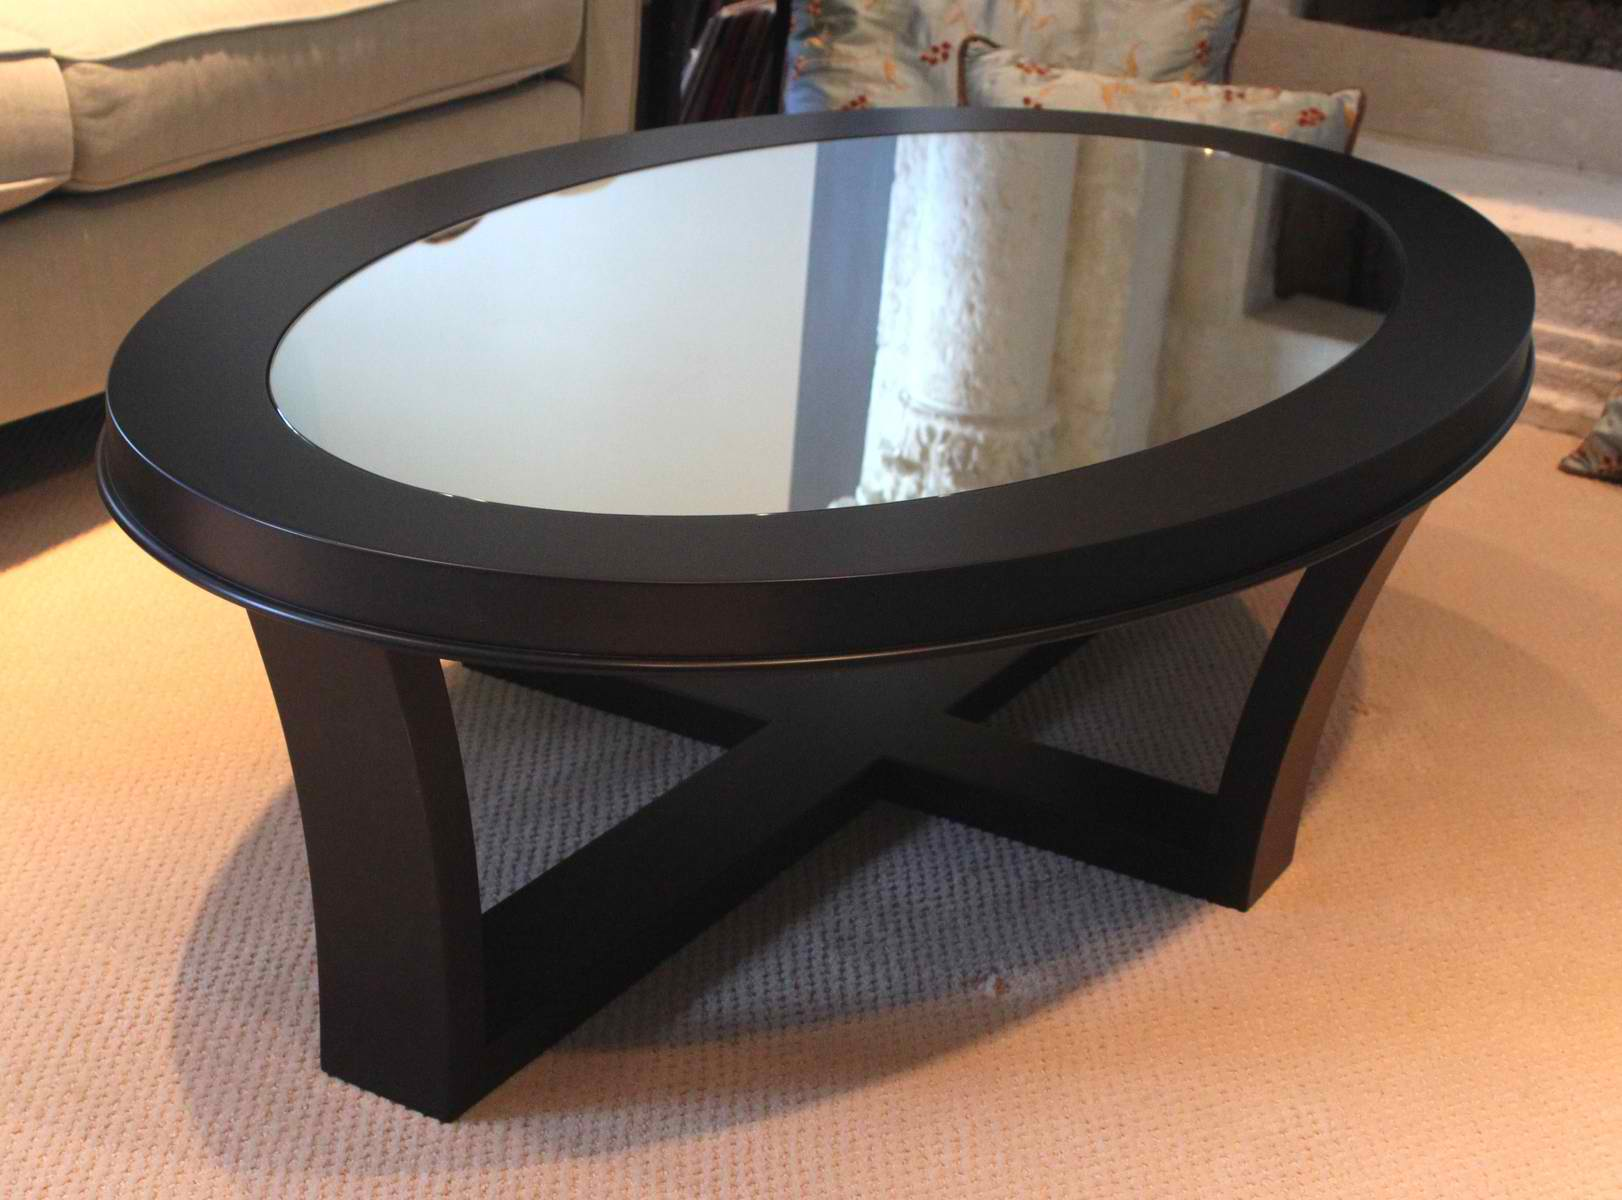 2017 Latest Black Glass Coffee Table With Black Legs